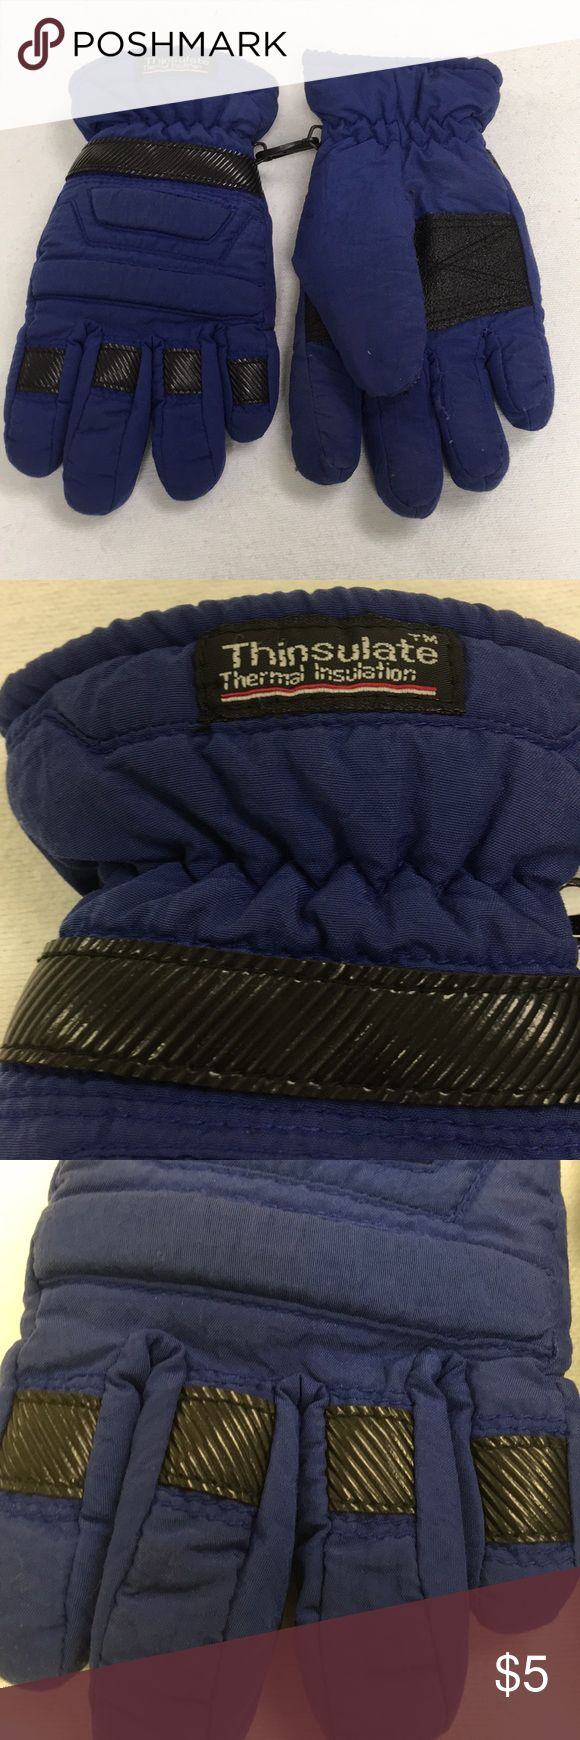 🎁 Free 🎁 Thinsulate Thermal Insulation Gloves 🎁FREE WITH ANY KID PURCHASE 🎁 Blue. Insulated. Show signs of wear. There is a small rip on the backside of the finger of the right glove. Shell nylon, interior polyester. Size 8/9 Small. (11/5) Accessories Mittens